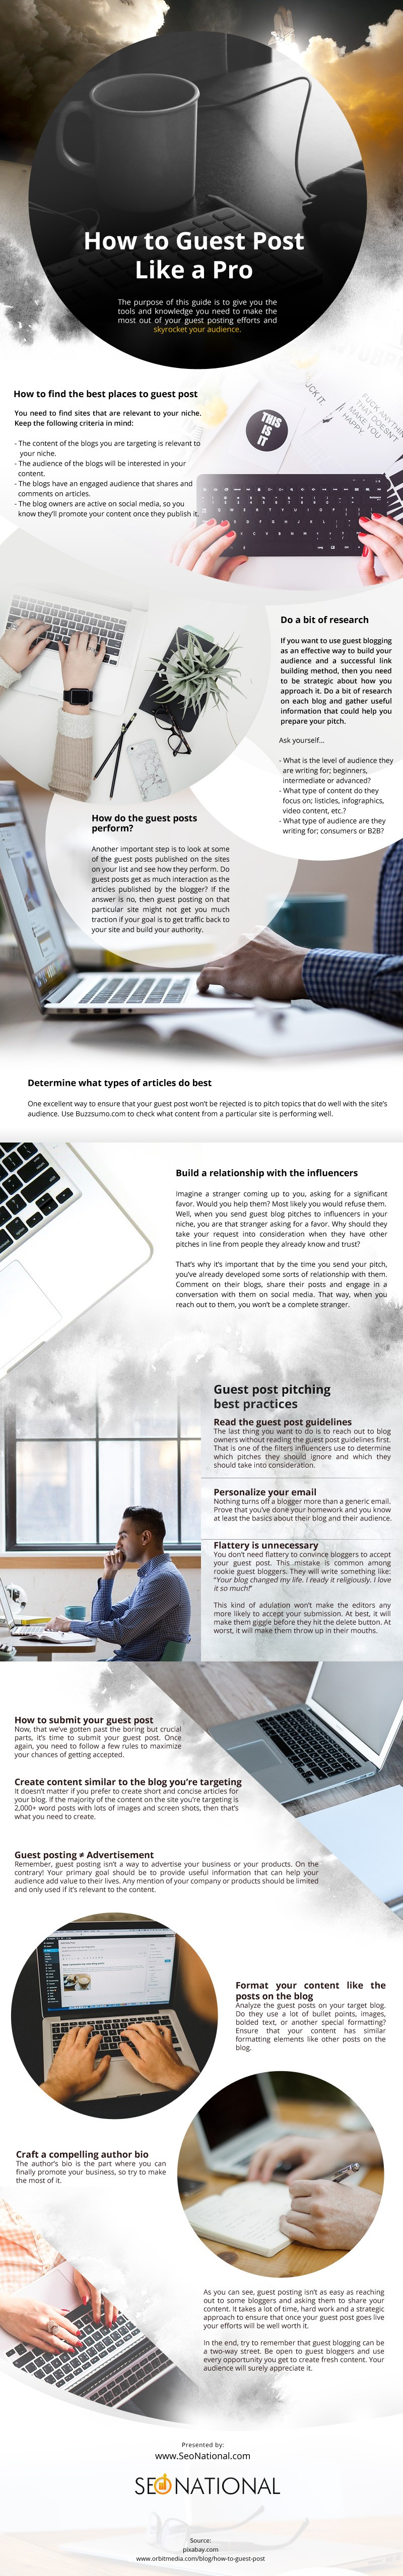 How to Guest Post Like a Pro Infographic